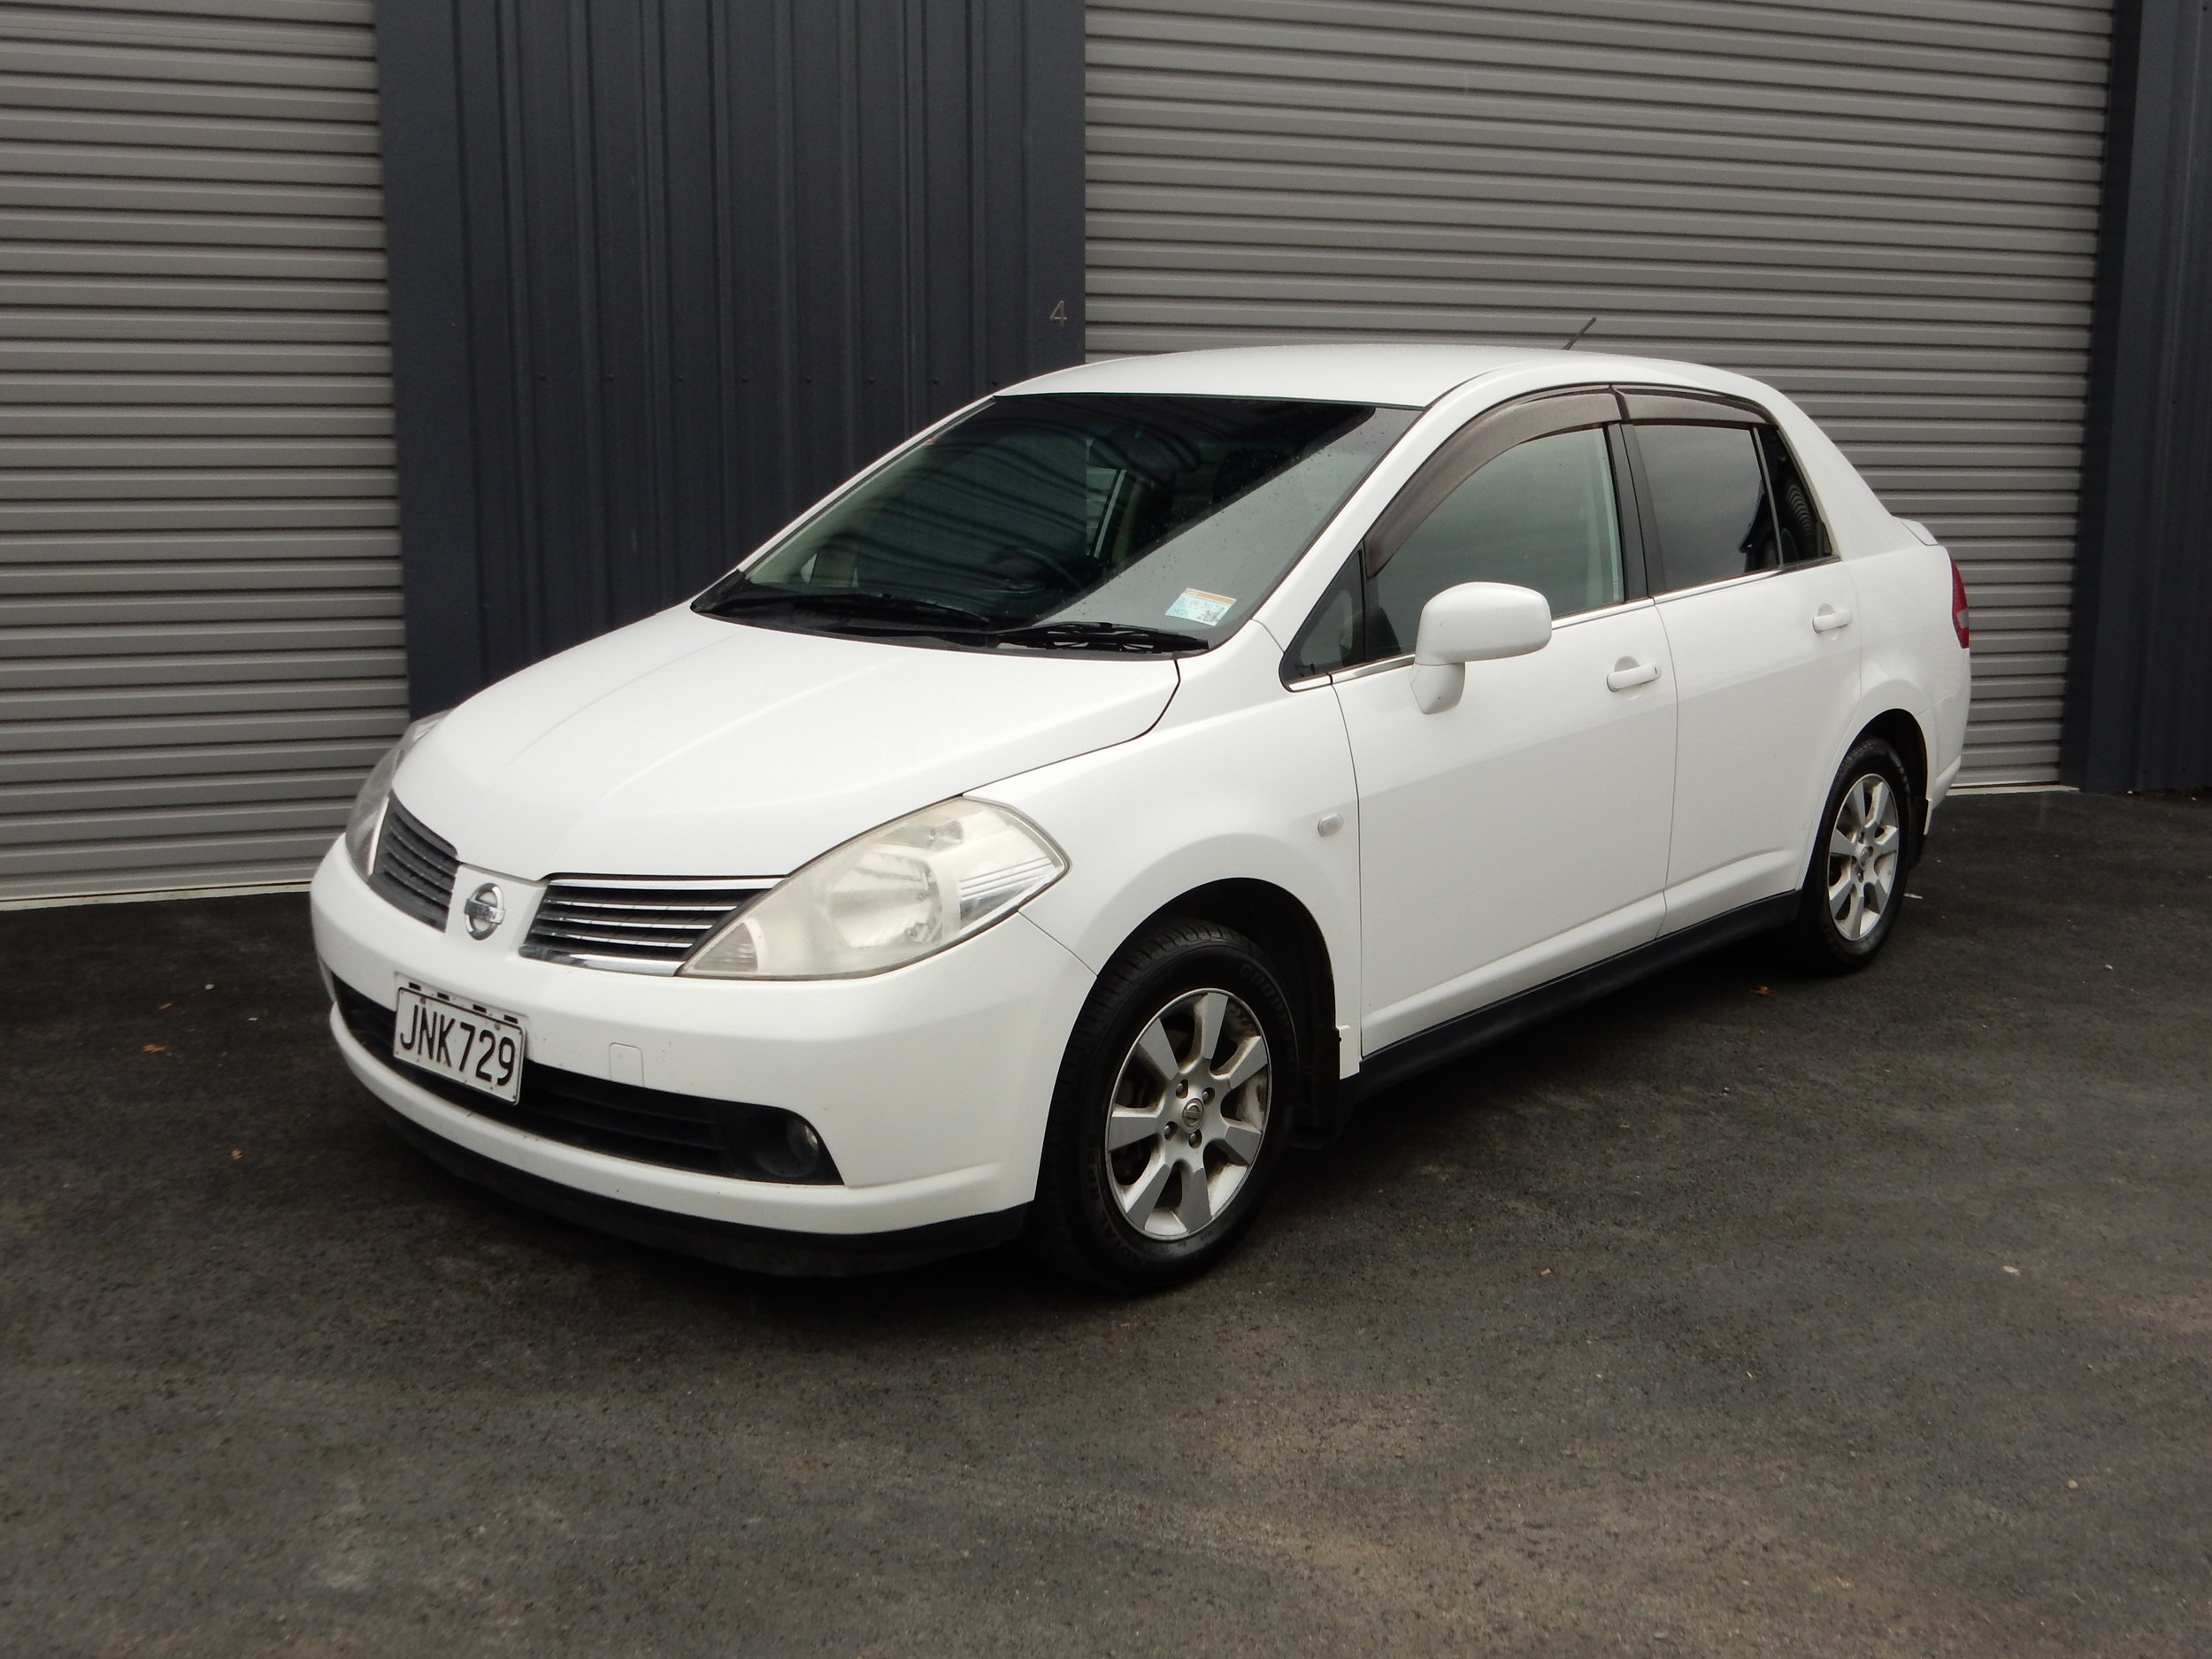 Nissan Tilda Sedan - 2005 -20071500- 1800cc6.5L/100km fuel use45L fuel tankUnleaded fuelAir ConditioningTwin AirbagsAutomaticFrom $35 Per dayMinimum hire periods apply for this rate